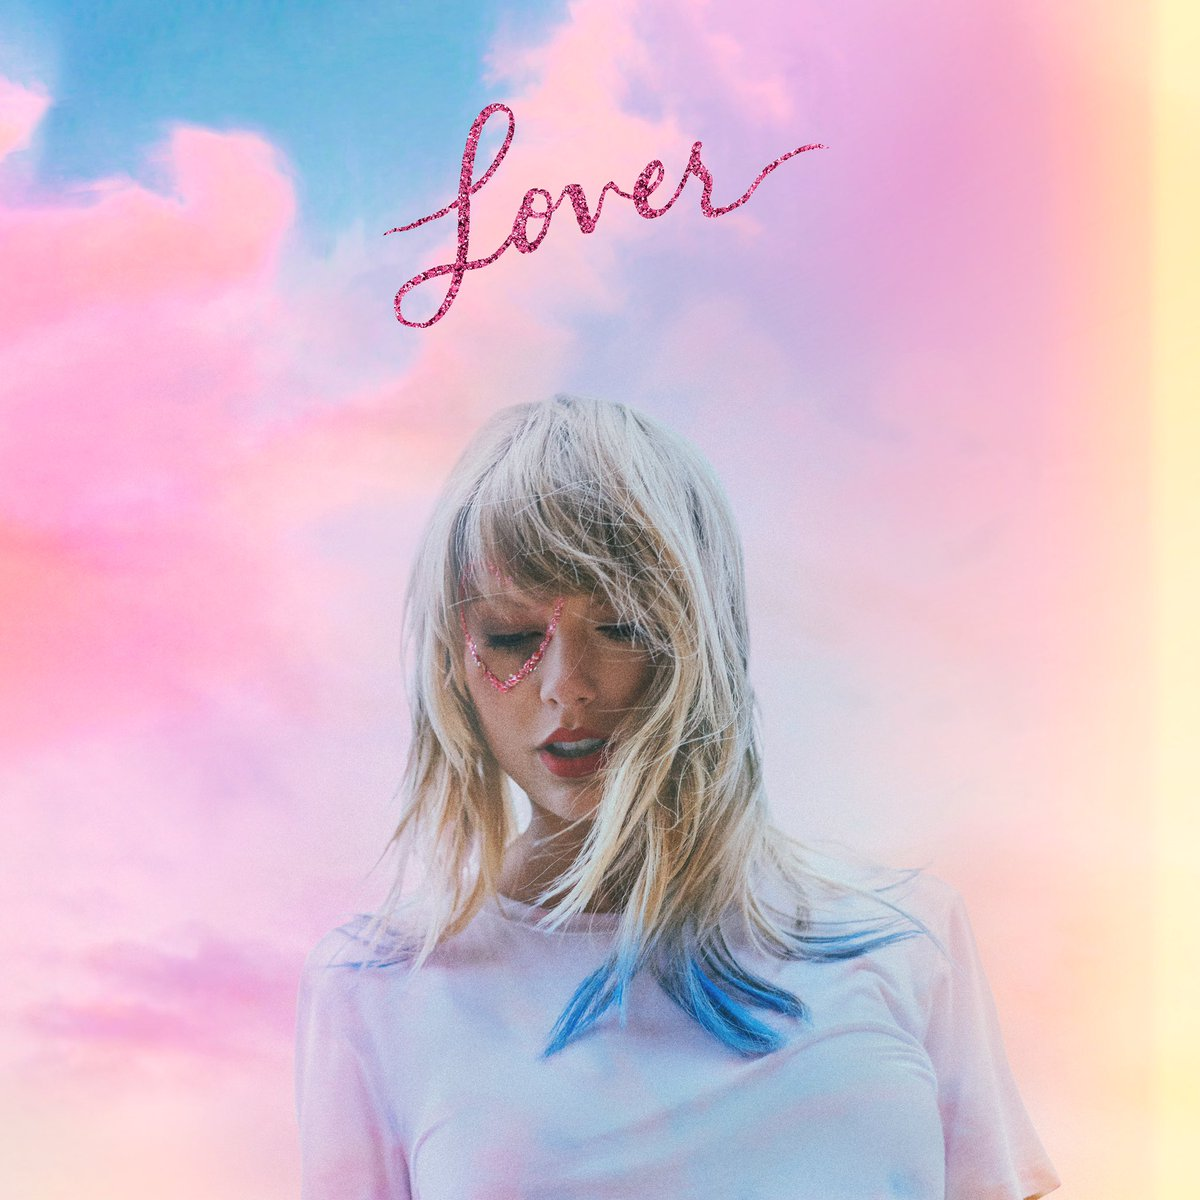 Will Taylor Swift Go on Tour For Lover? She Says…